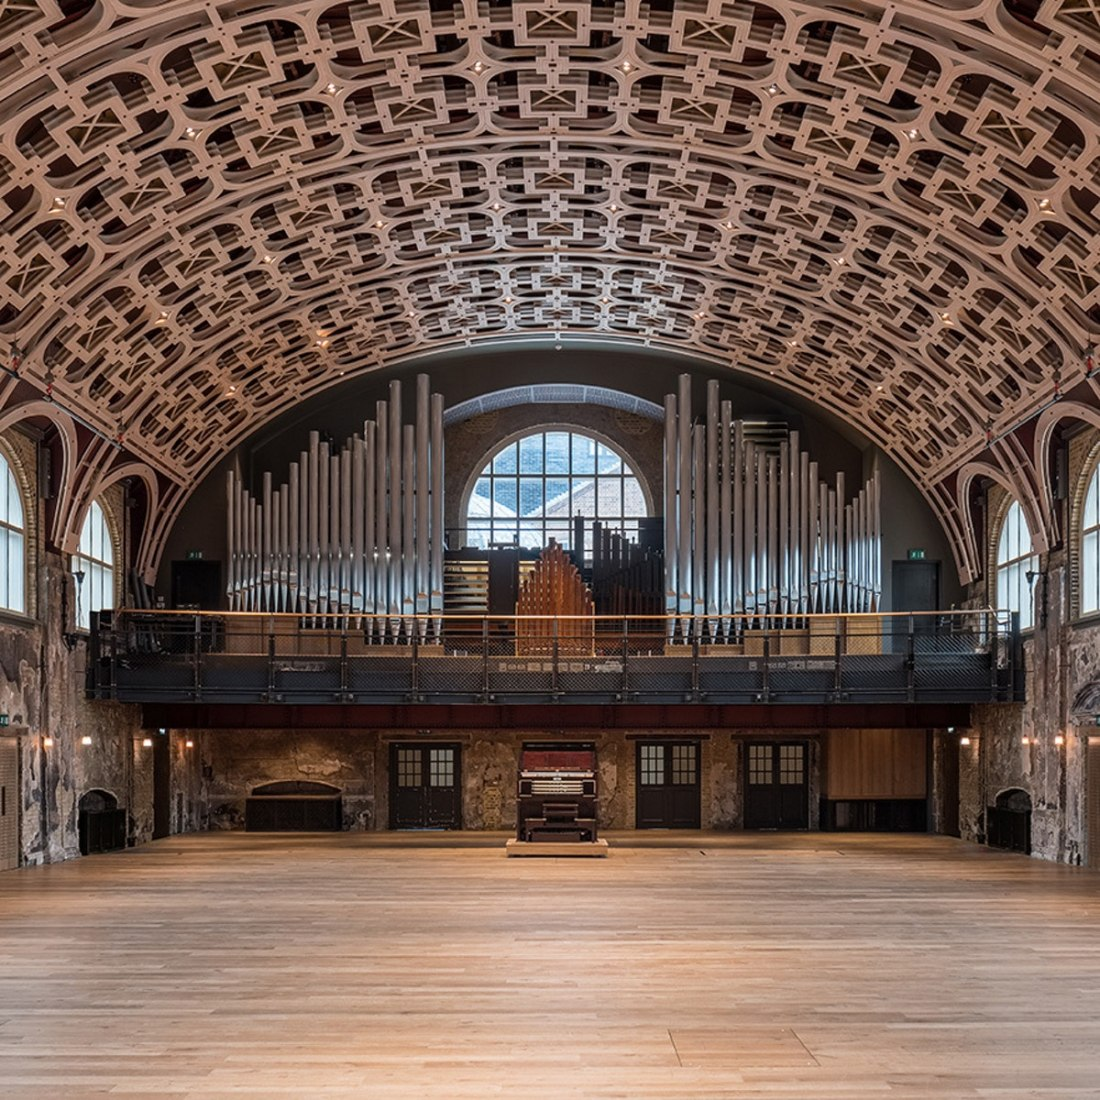 Battersea Arts Centre by Haworth Tompkins. Photograph by Fred Howarth.